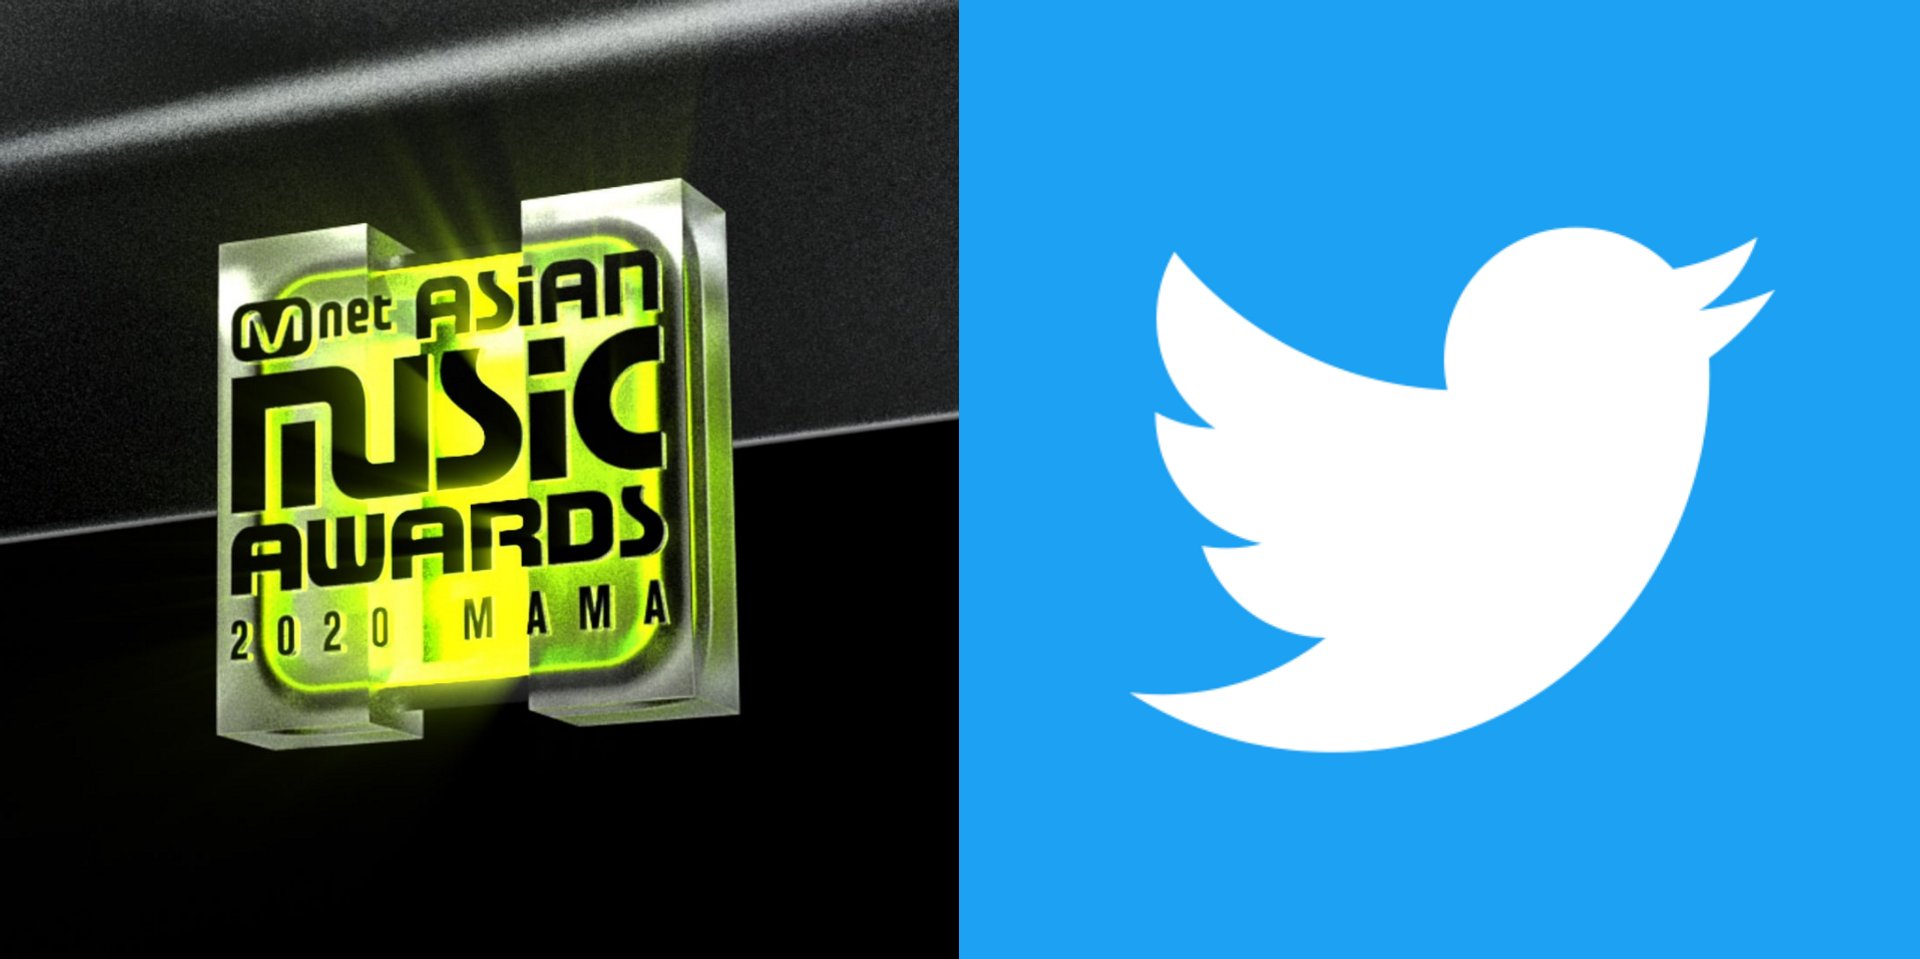 Mnet Asian Music Awards and Twitter team up for 'Stanbot' featuring your favourite K-pop artists at the 2020 MAMA